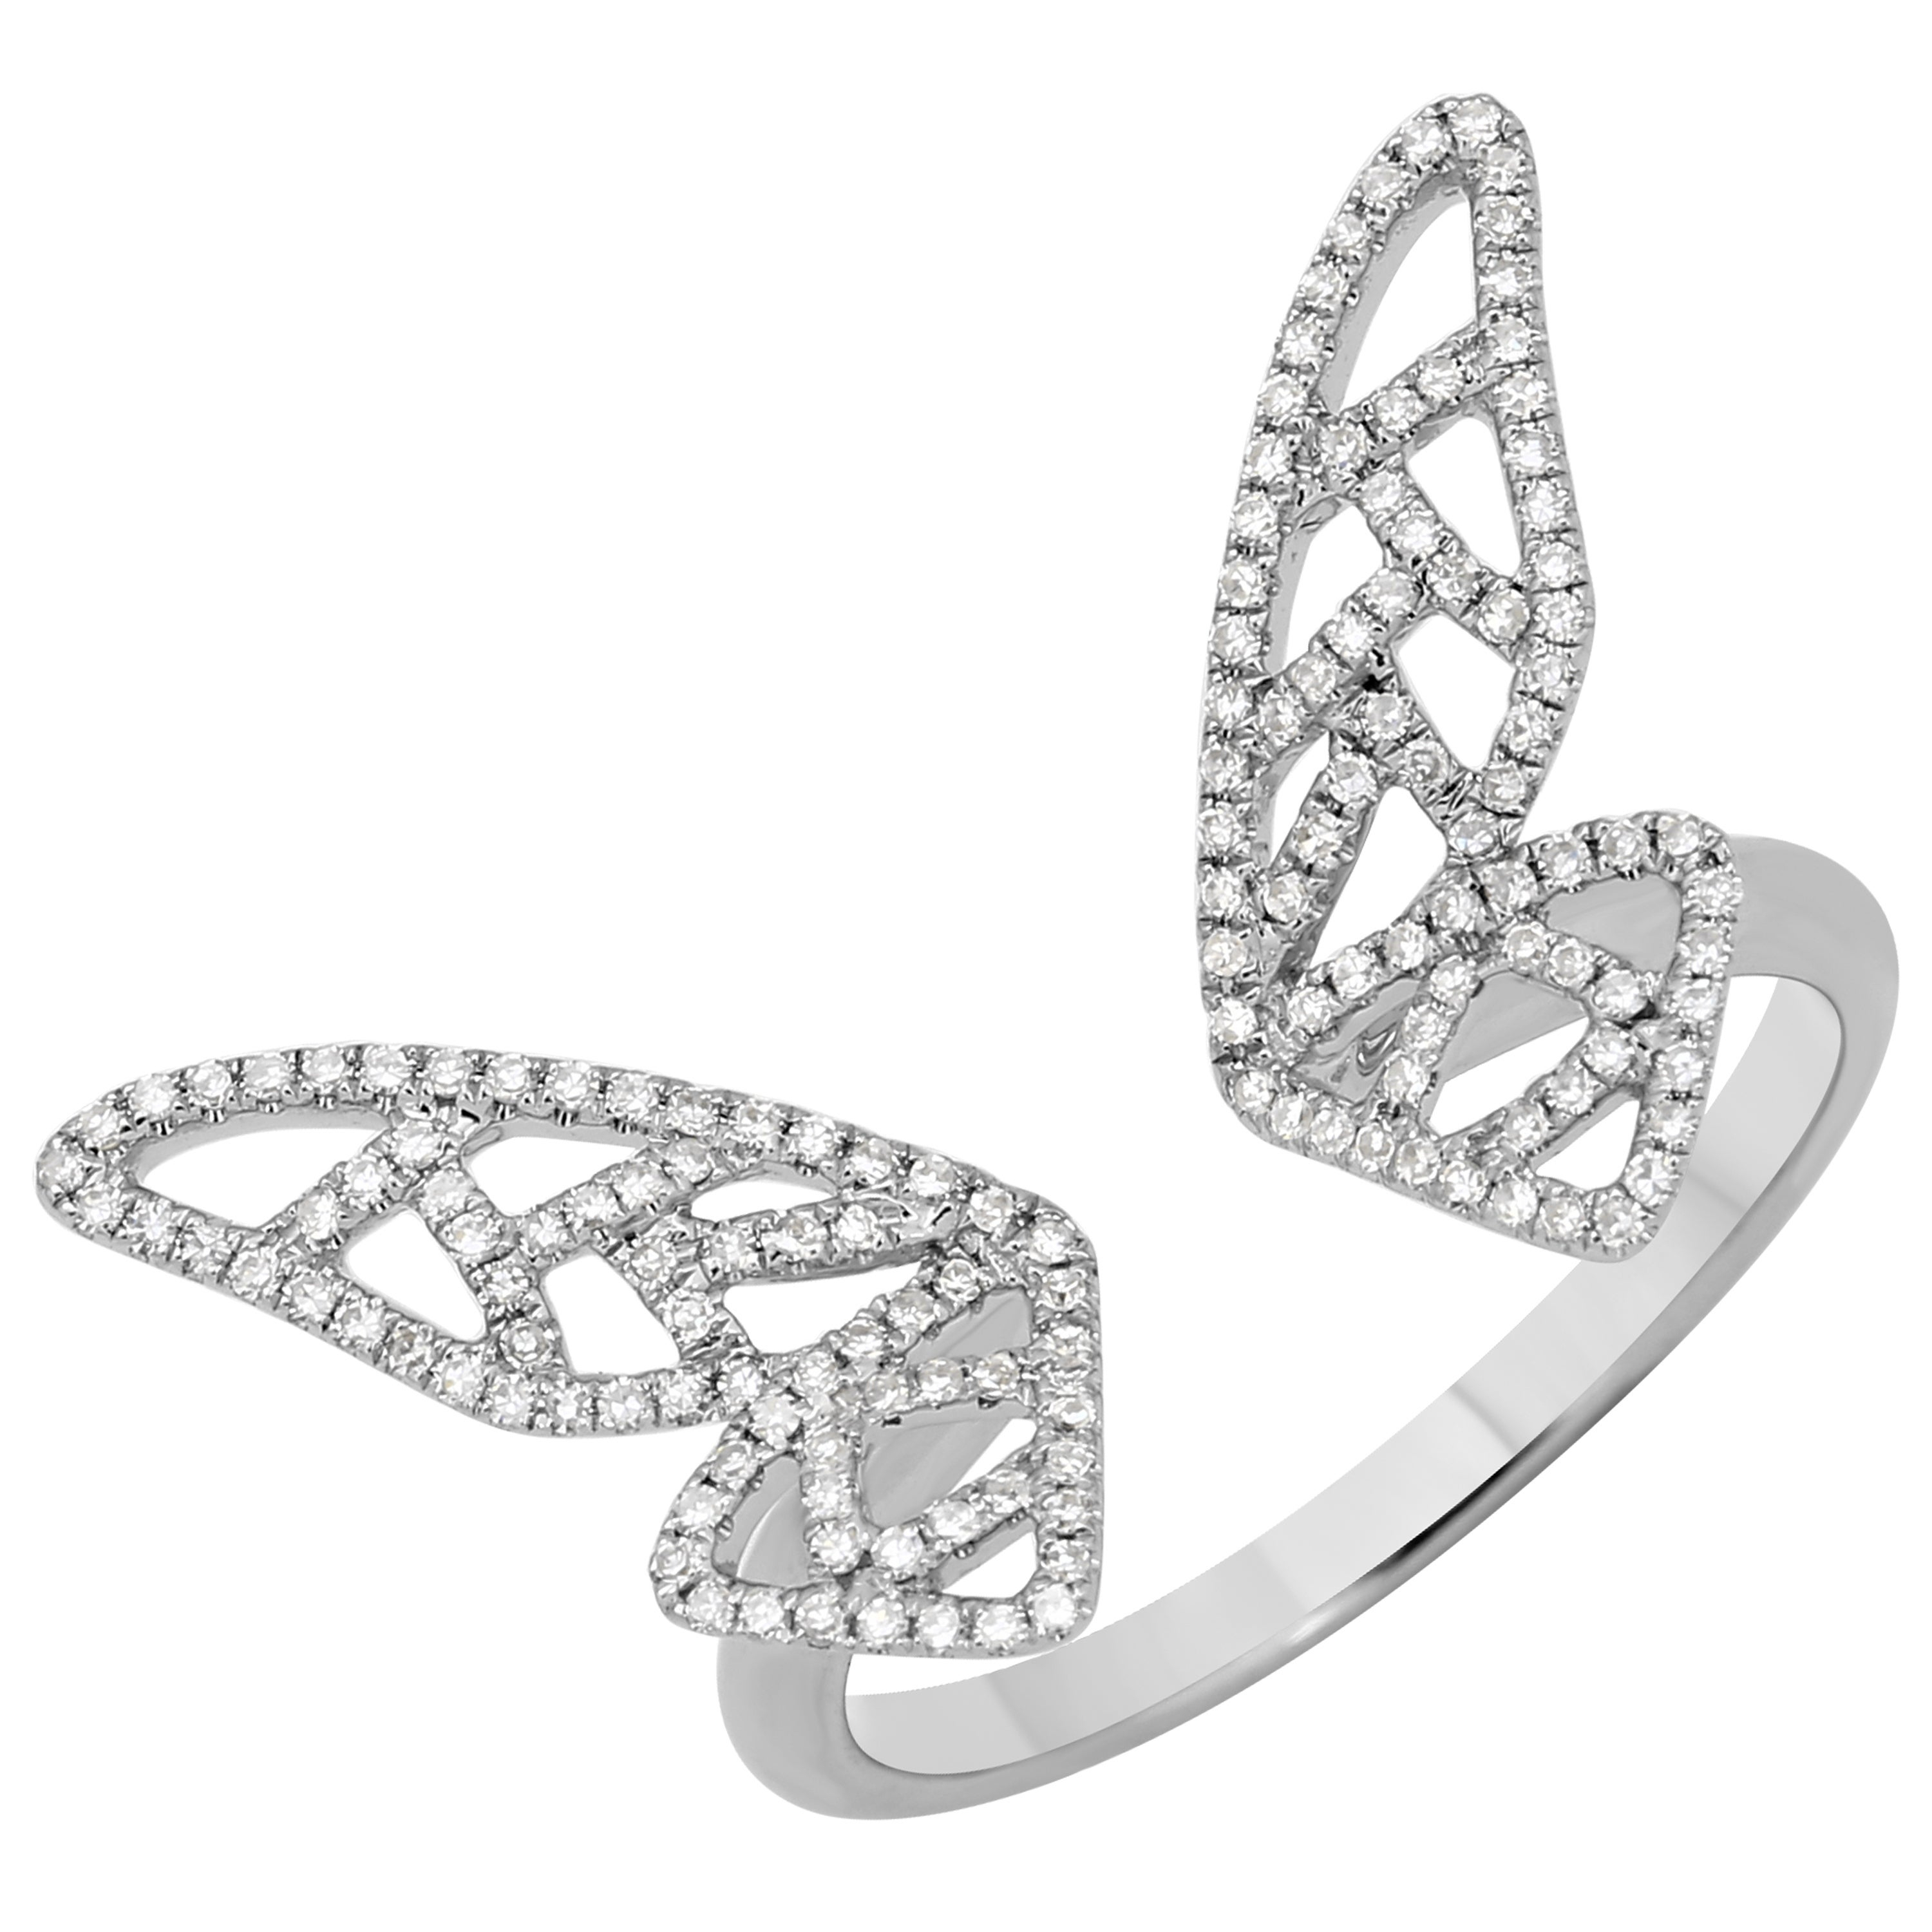 0.3 Ct Natural Diamond Open Ring 14K White Gold Butterfly Rings – Size 7 Intended For Best And Newest Butterfly Open Rings (Gallery 22 of 25)